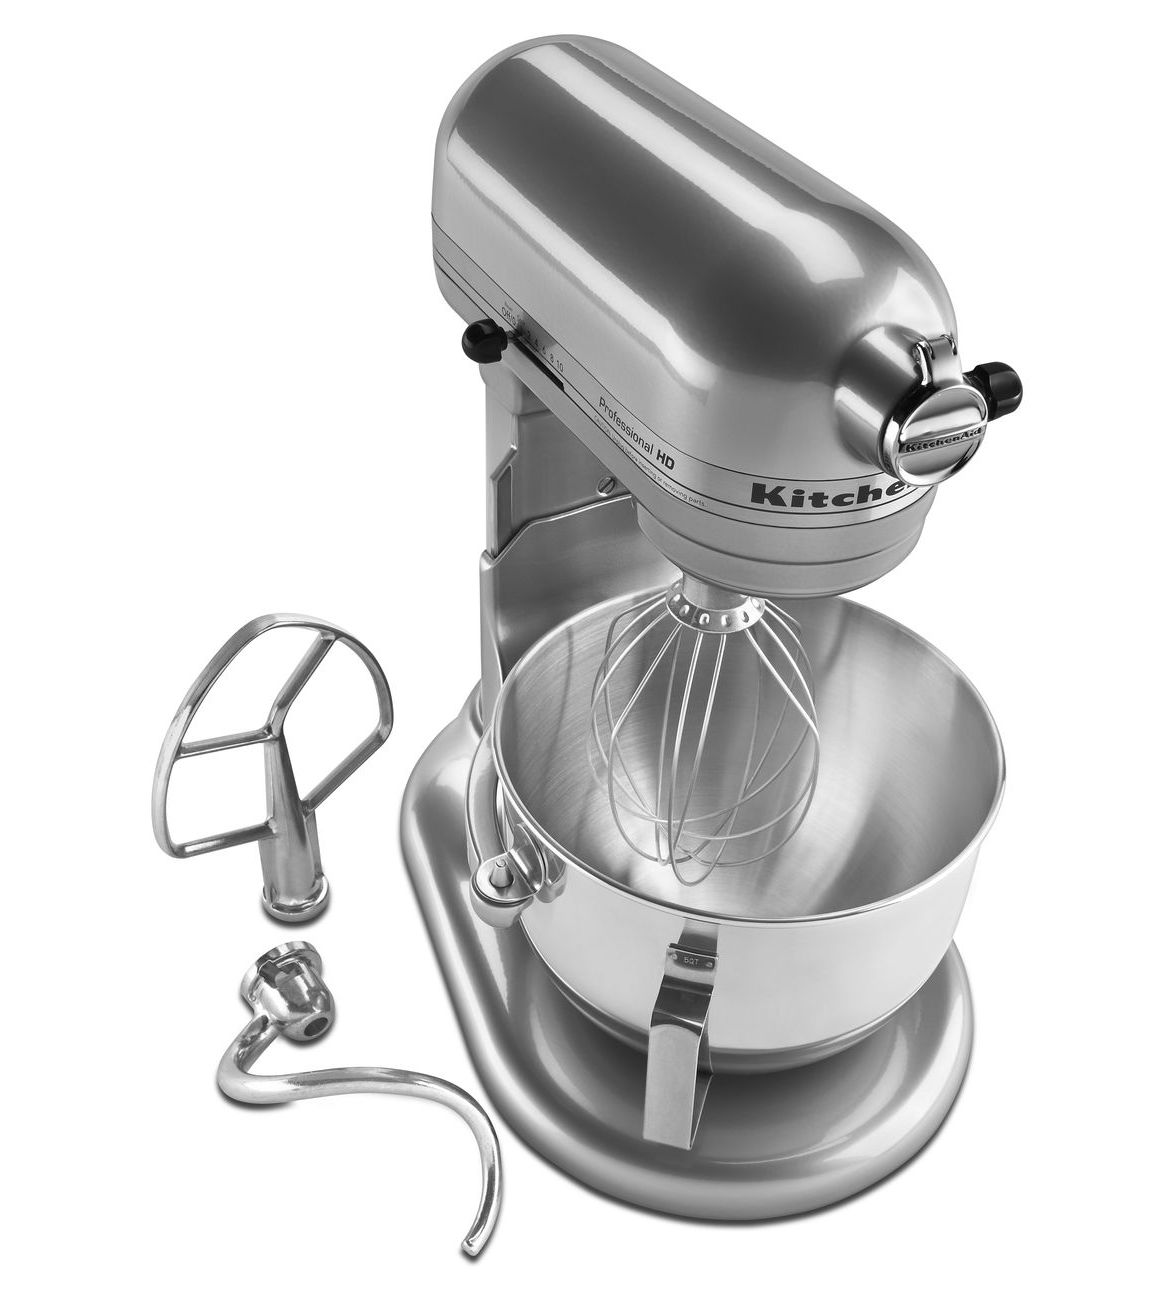 Kitchenaid 174 Refurbished Professional Hd Series Bowl Lift